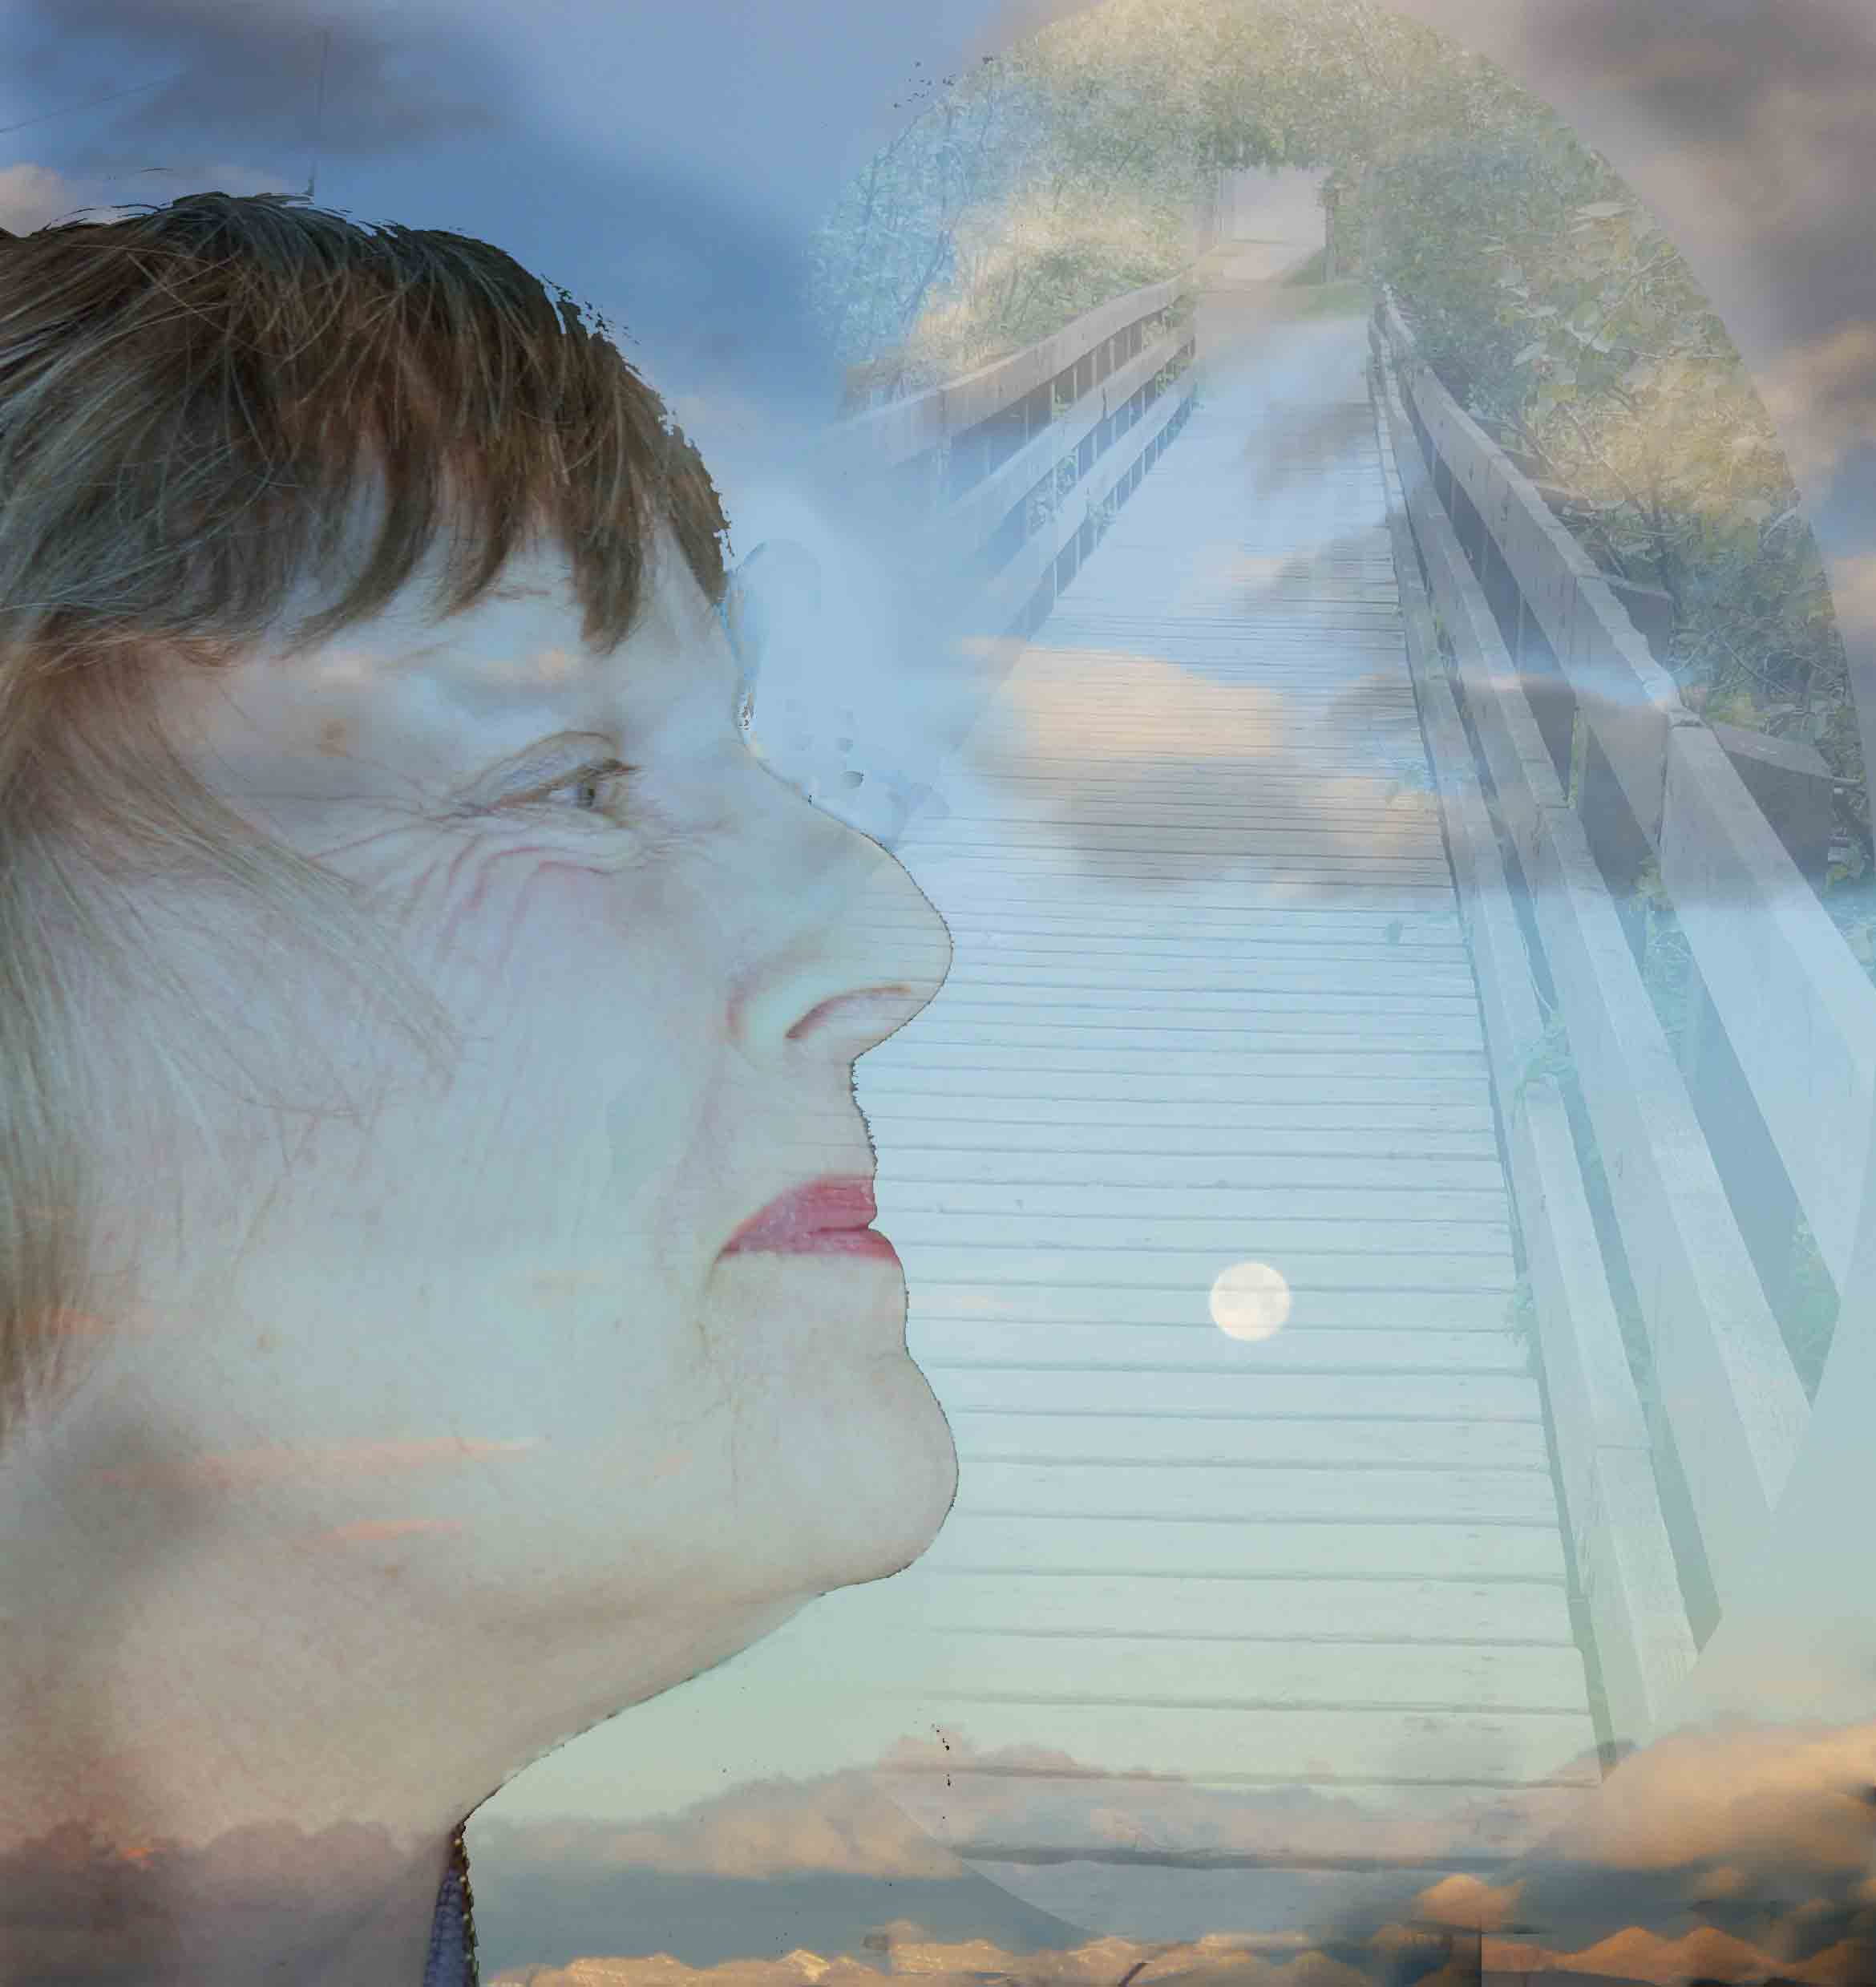 Photoshop layers make a face looking thoughtful with a layer of a bridge, the moon, and sky in the background.